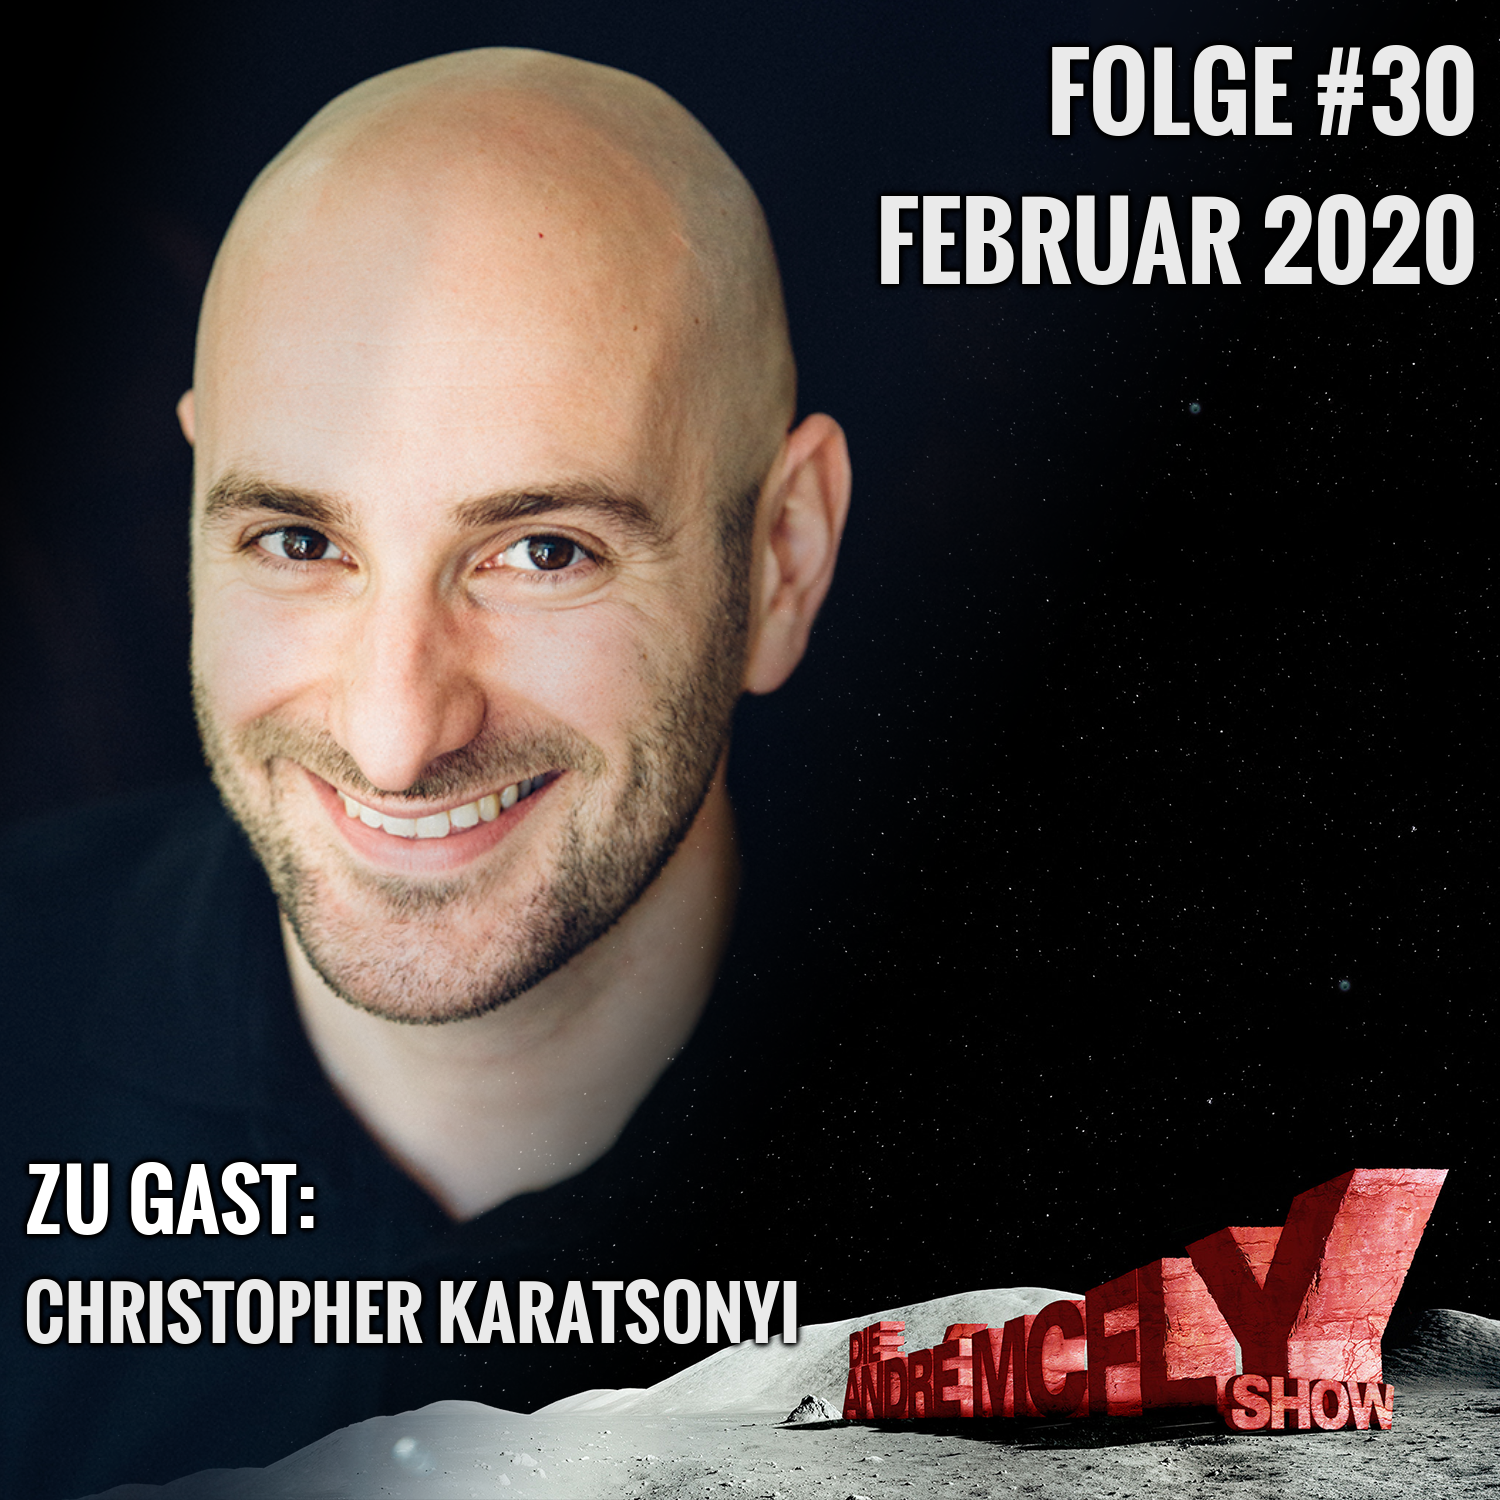 Die André McFly Show #30   Gast: Christopher Karatsonyi